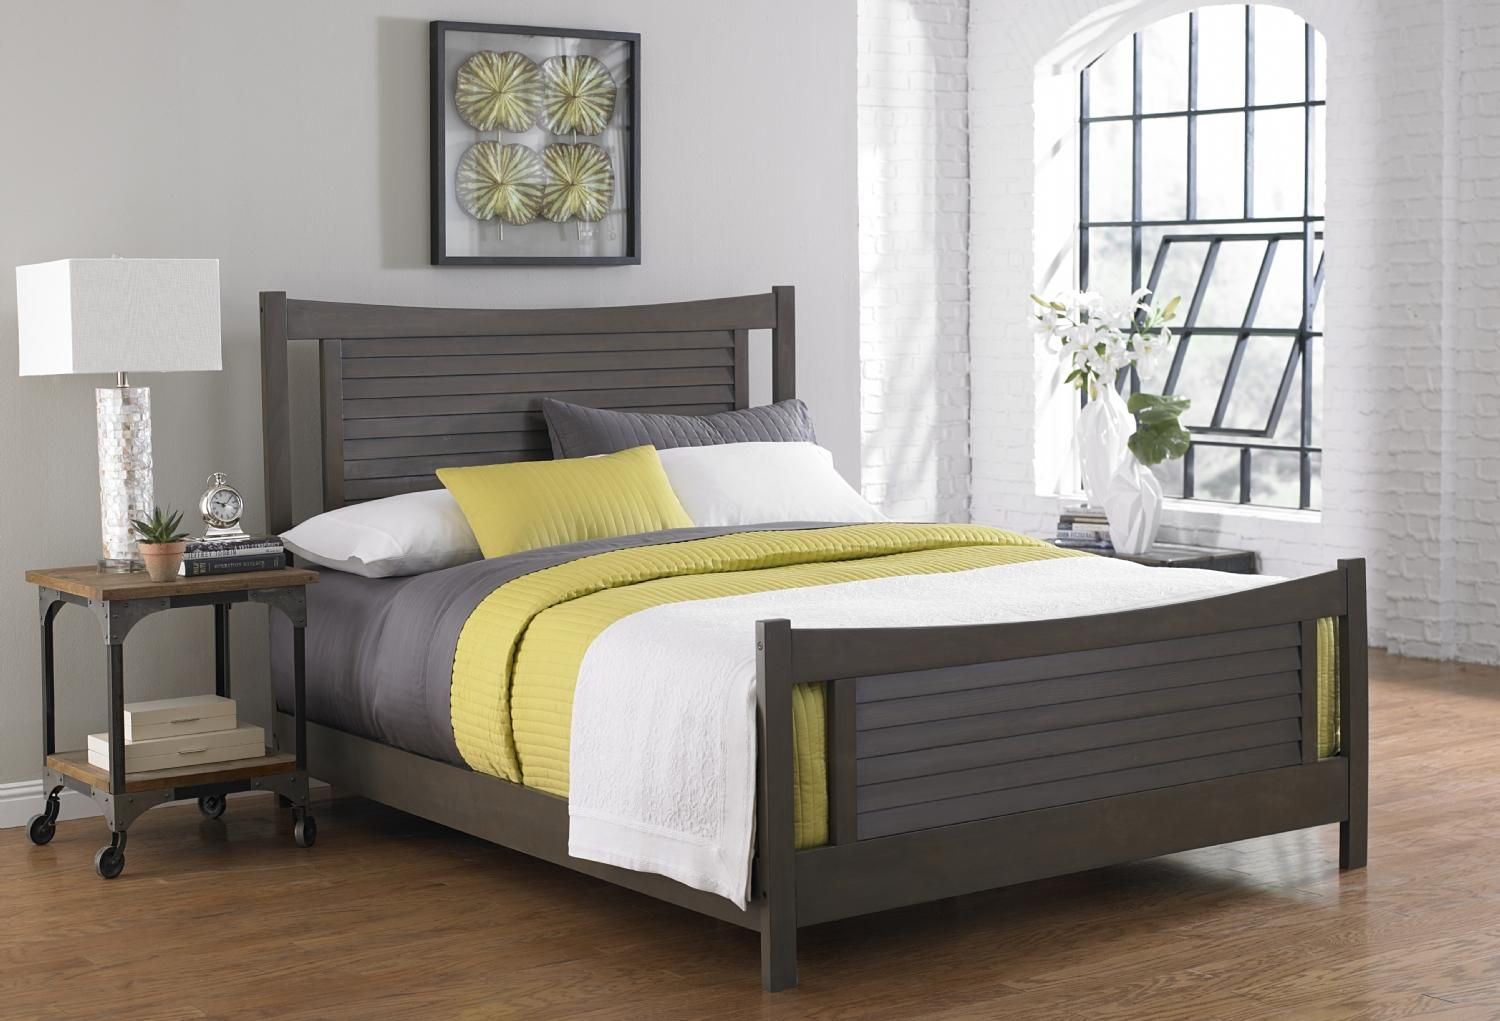 Ardmore bed beds and headboards pinterest bed headboards